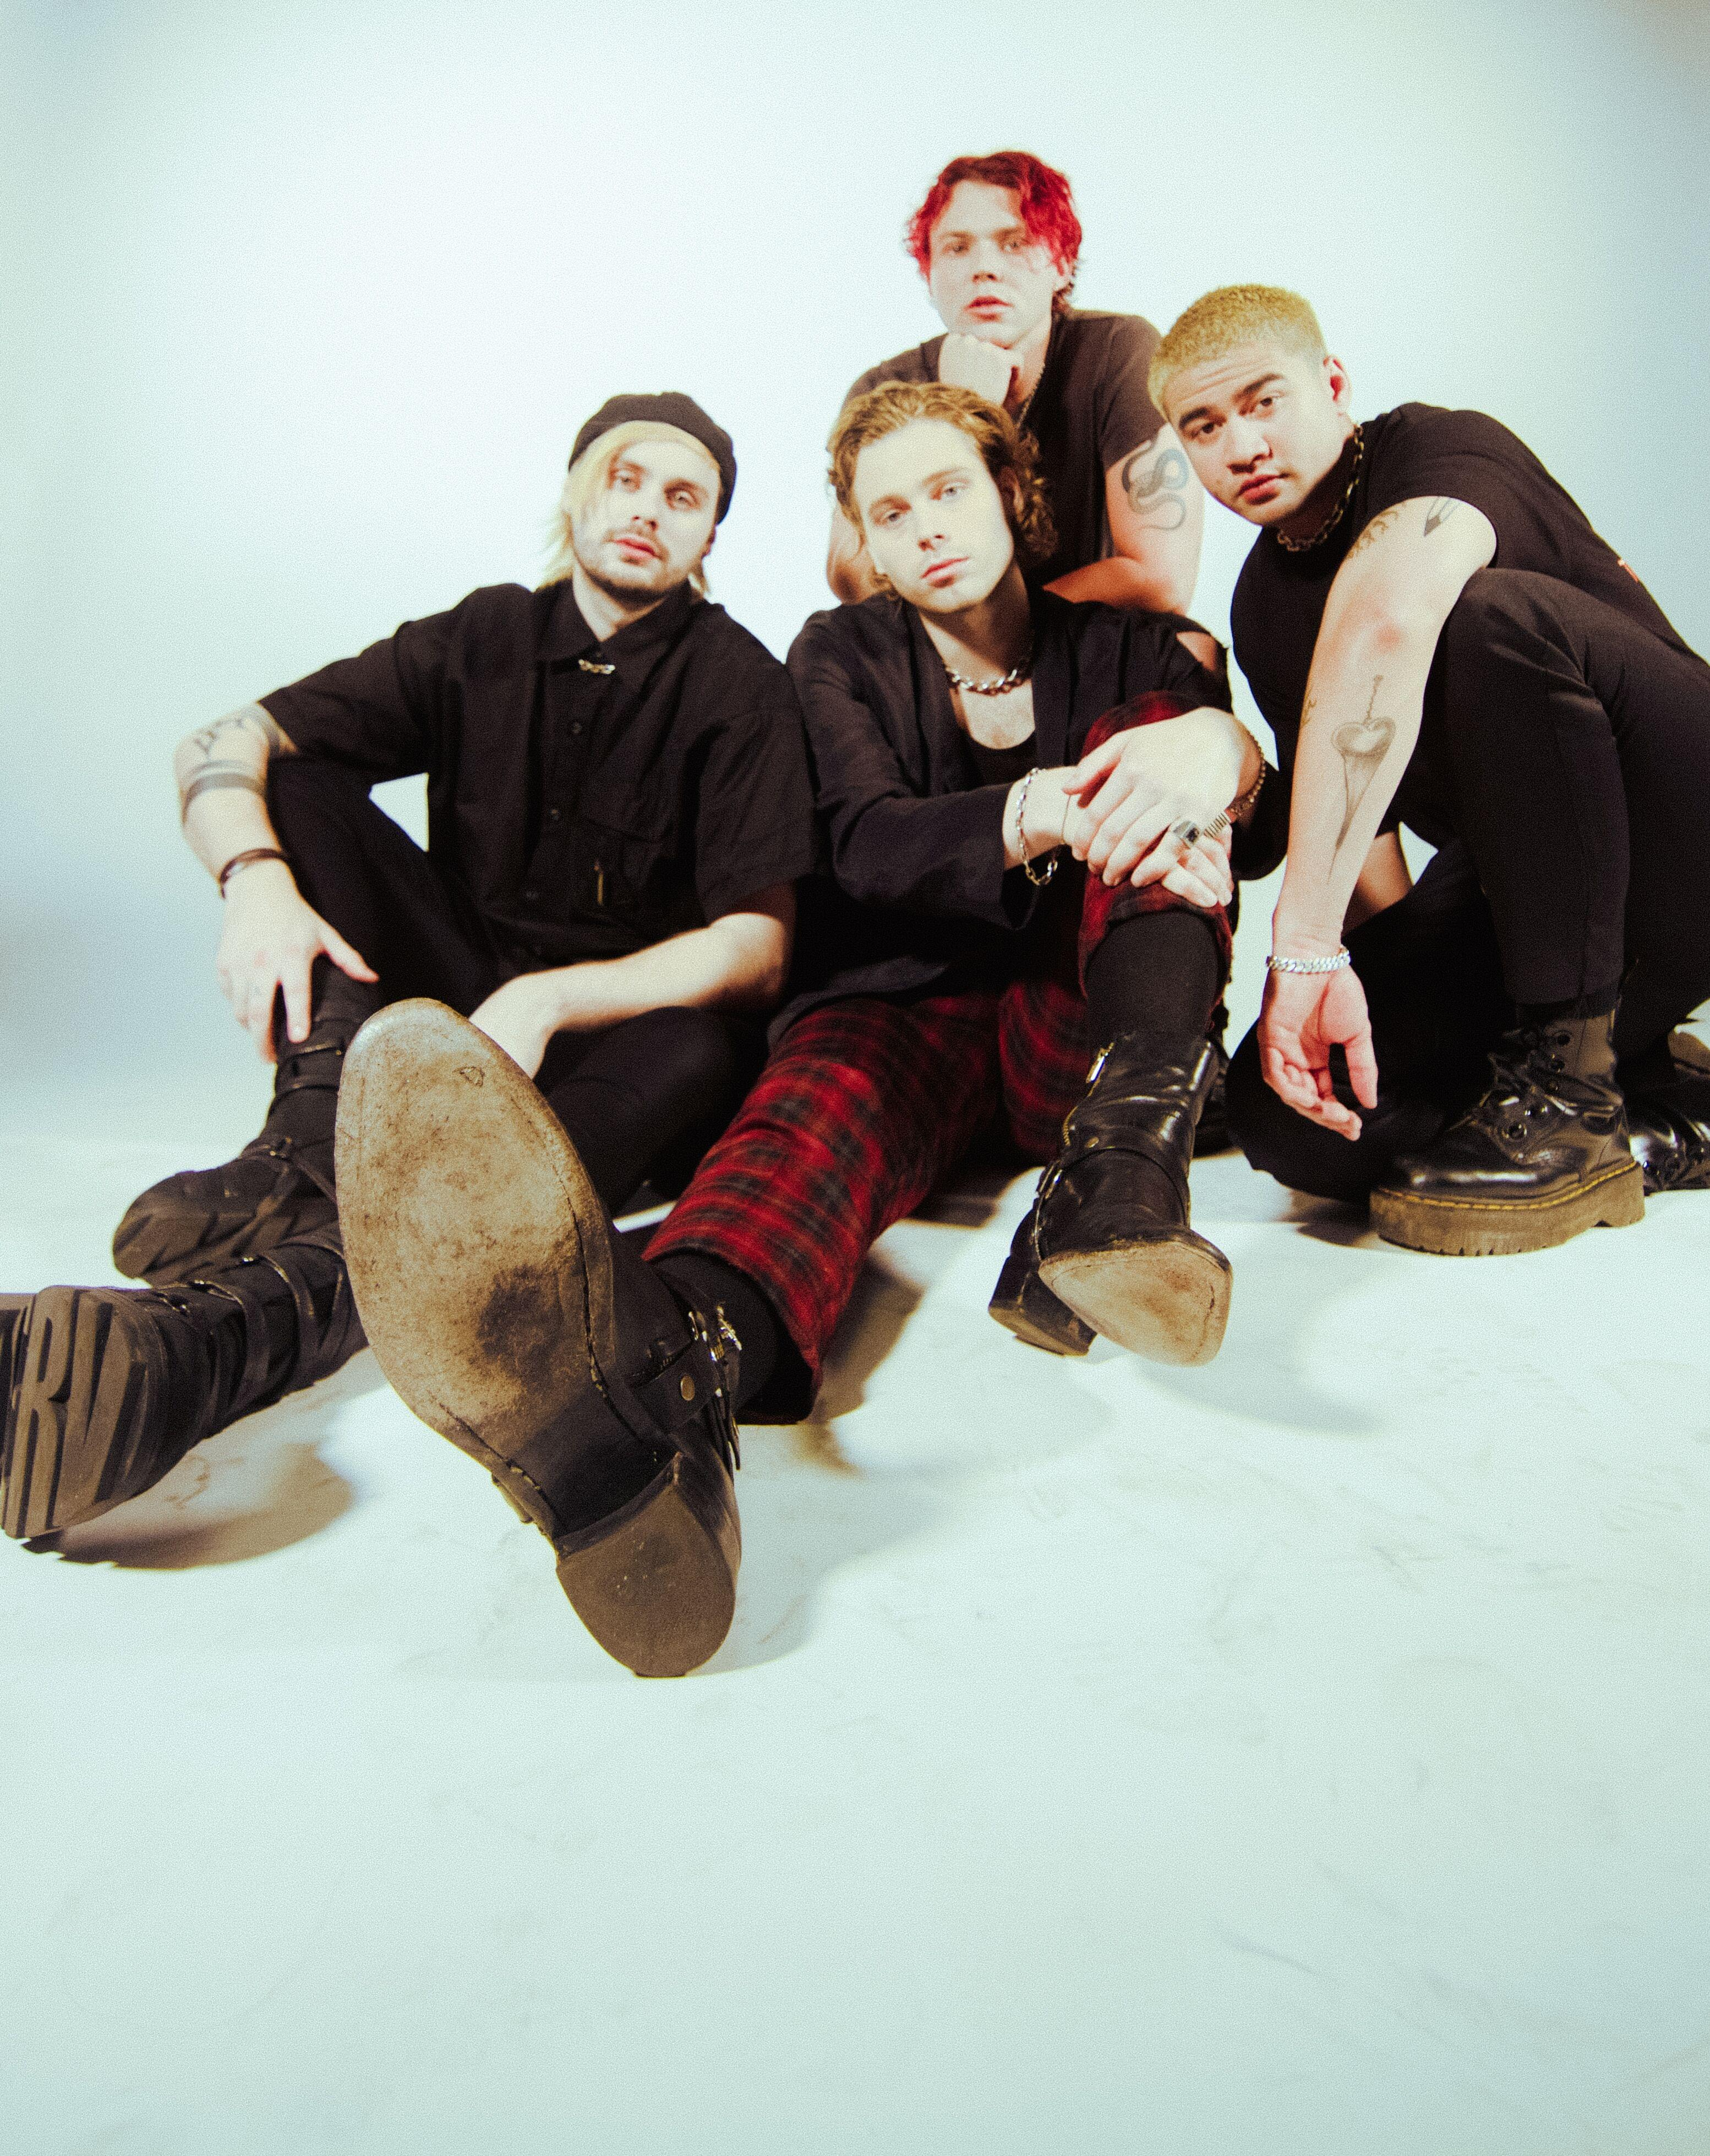 WIN A TRIP TO SEE 5 SECONDS OF SUMMER AND MEET THEM … IN LOS ANGELES!!!